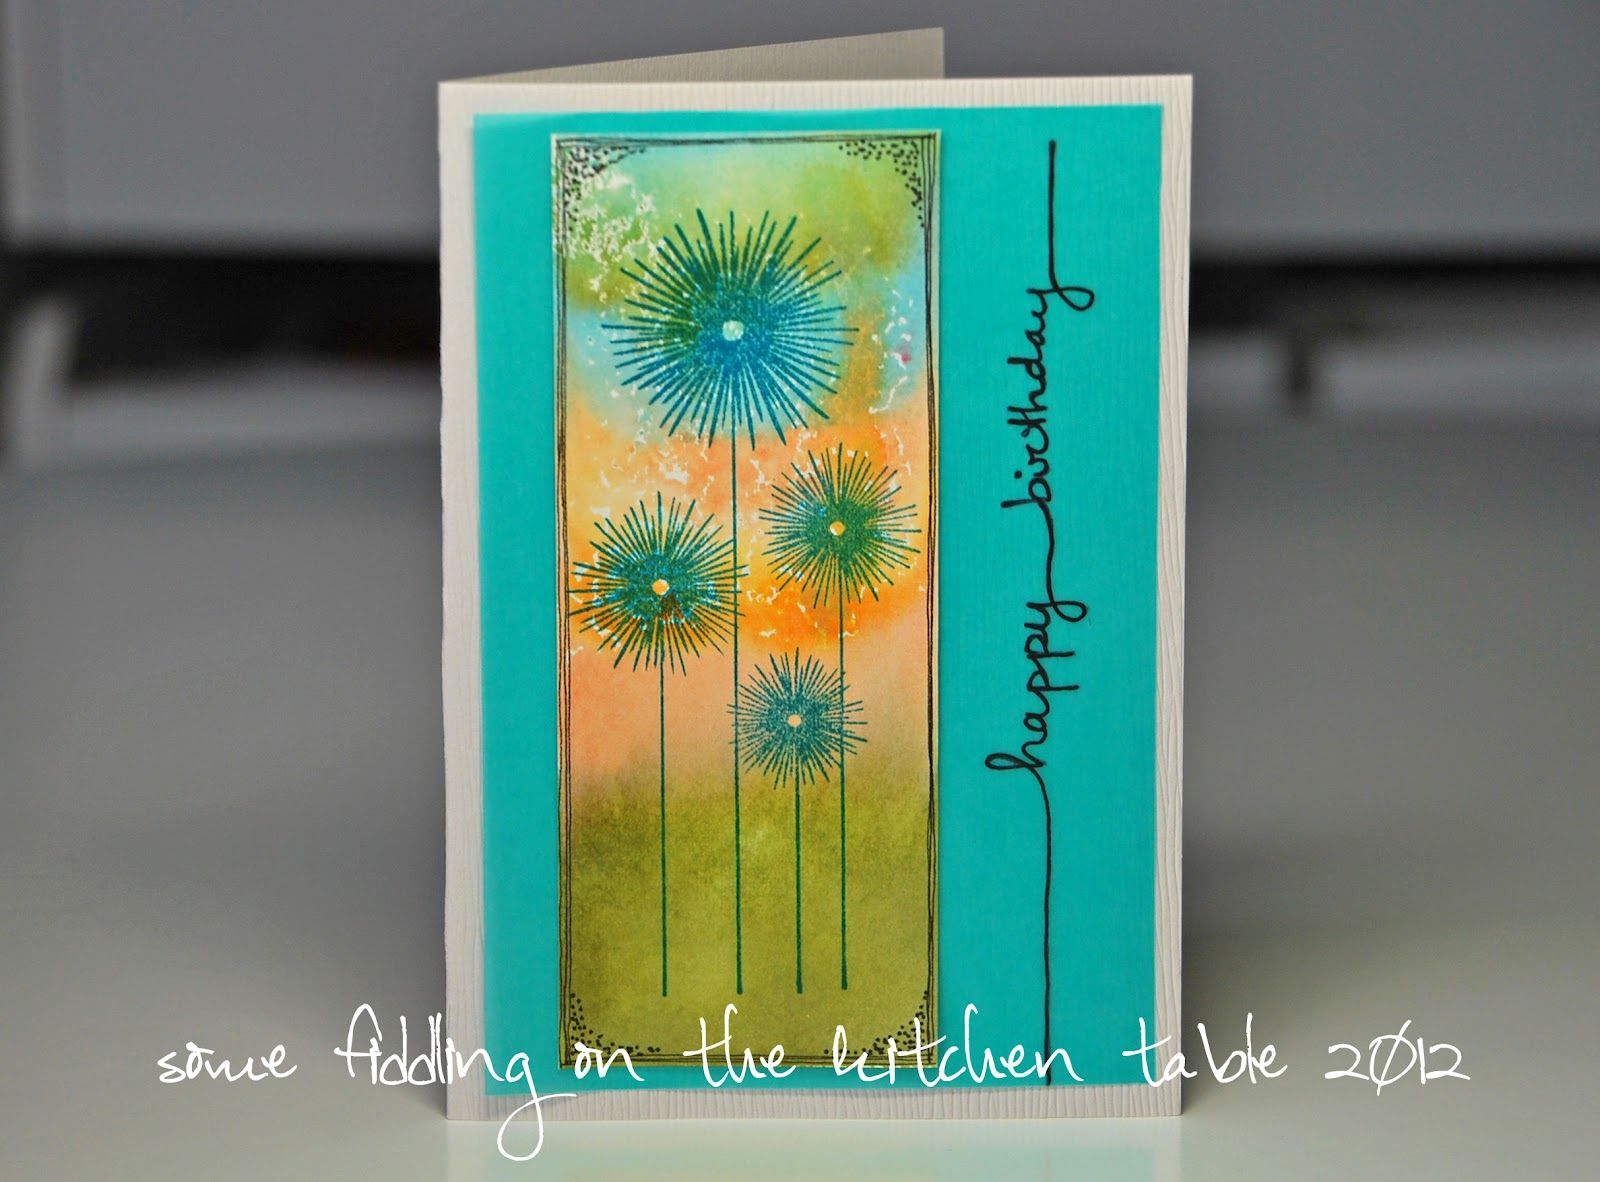 Some fiddling on the kitchen table | Card ideas | Pinterest | Art ...